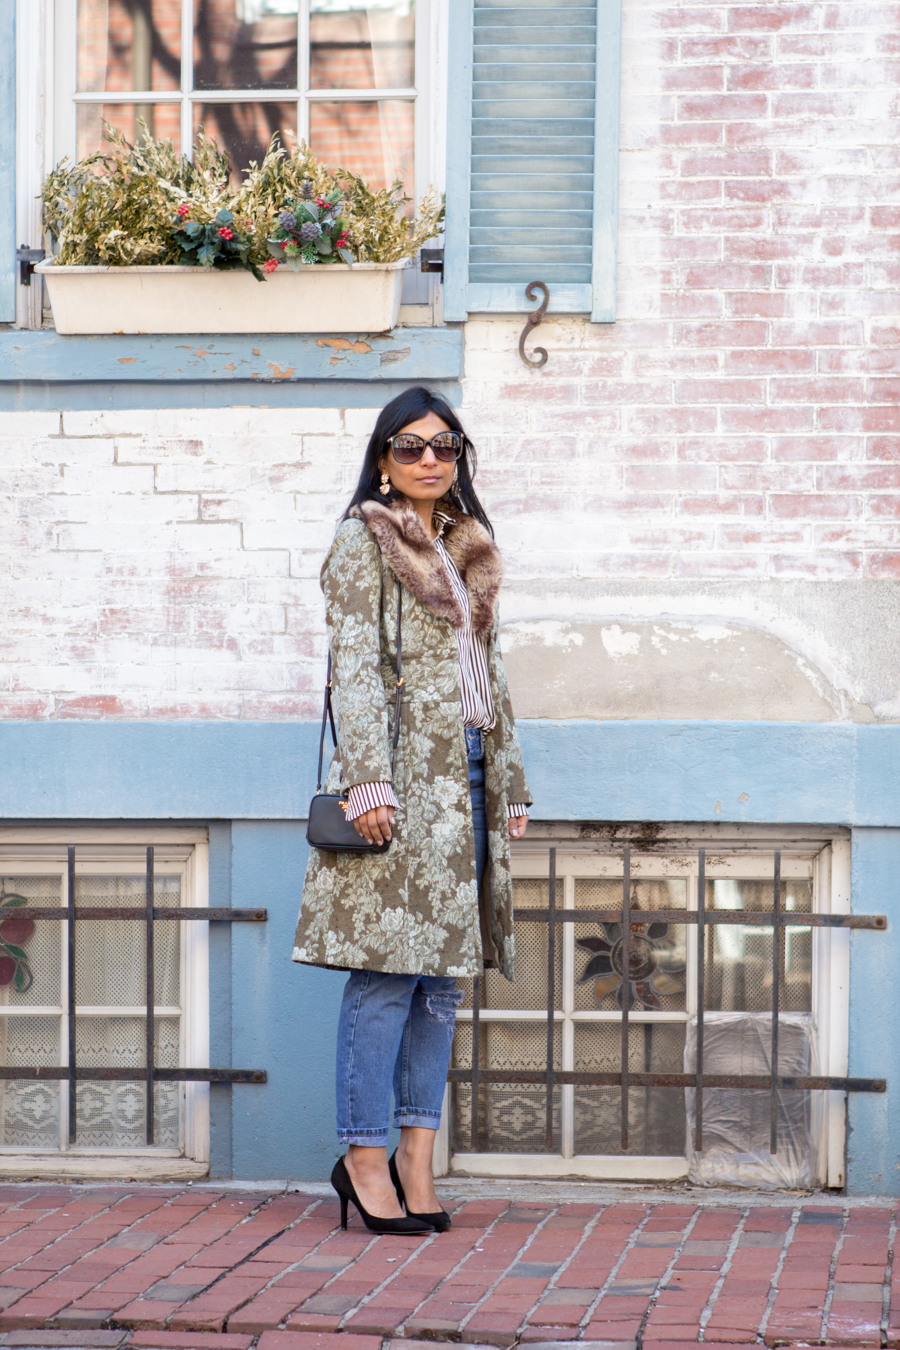 floral jacket, jacquard coat, statement coat, spring style, florals, green coat, mom jeans, black suede pumps, under $100, striped shirt, striped blouse, black and white stripes, eclectic, feminine style, easy glam, petite fashion, boston street style, mom style, mommy style, mom glam